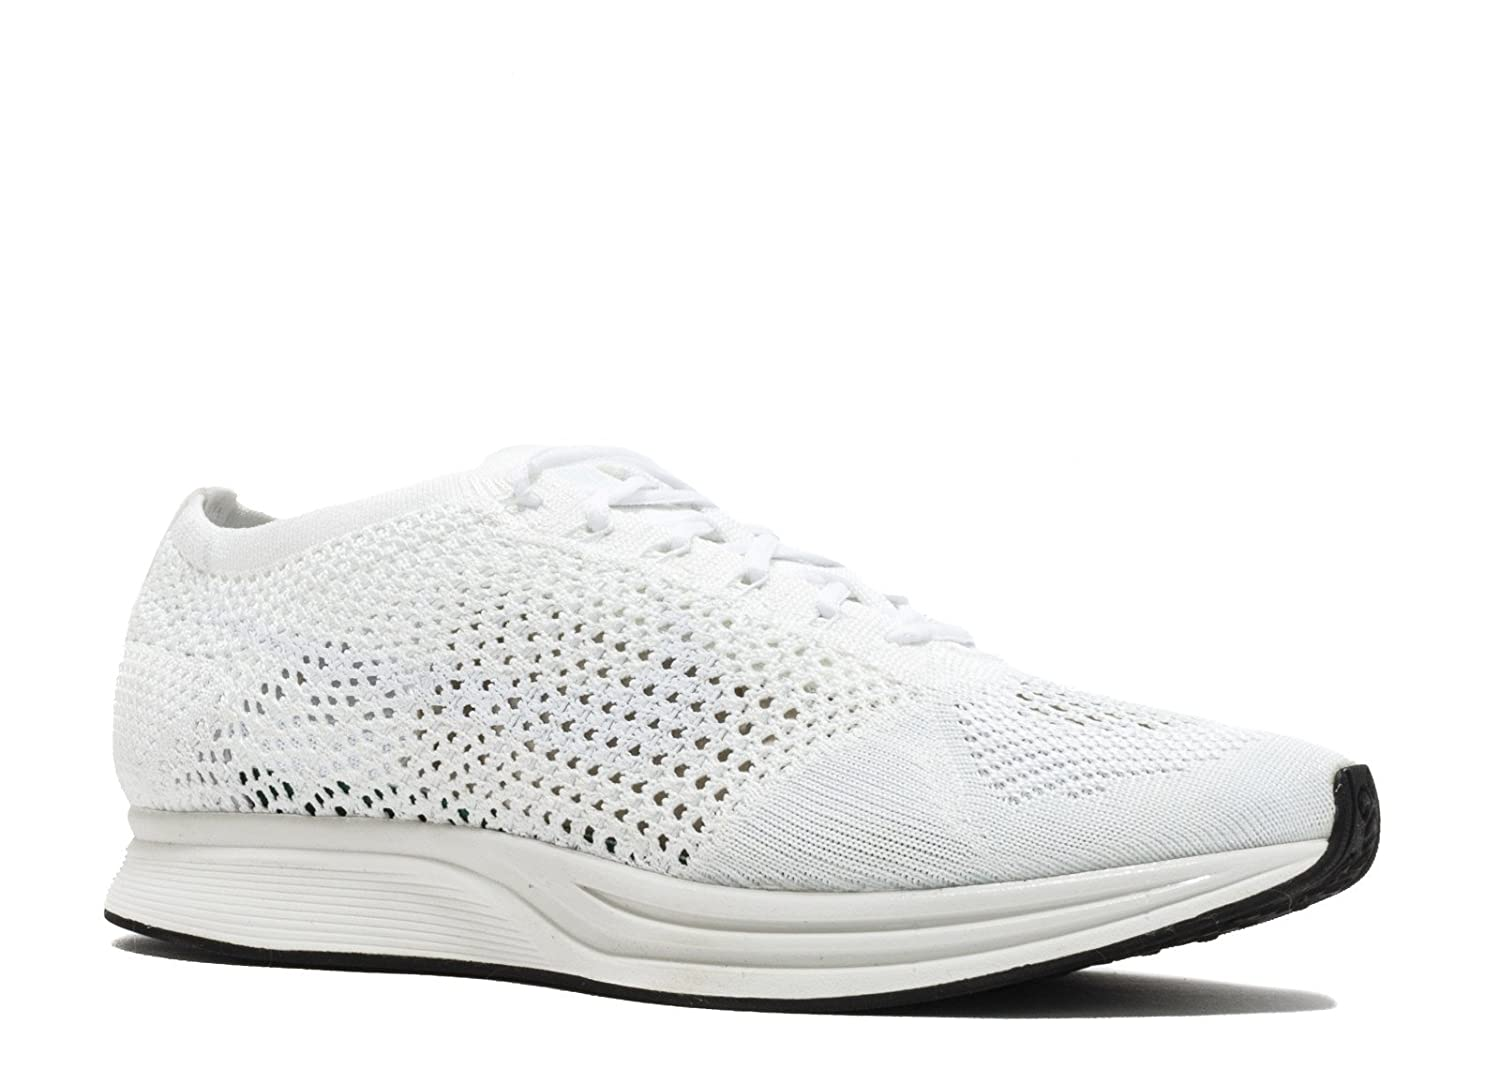 NIKE Unisex Flyknit Racer Running Shoe B06W2MG5M6 7 D(M) US|White/White-sail-pure Platinum